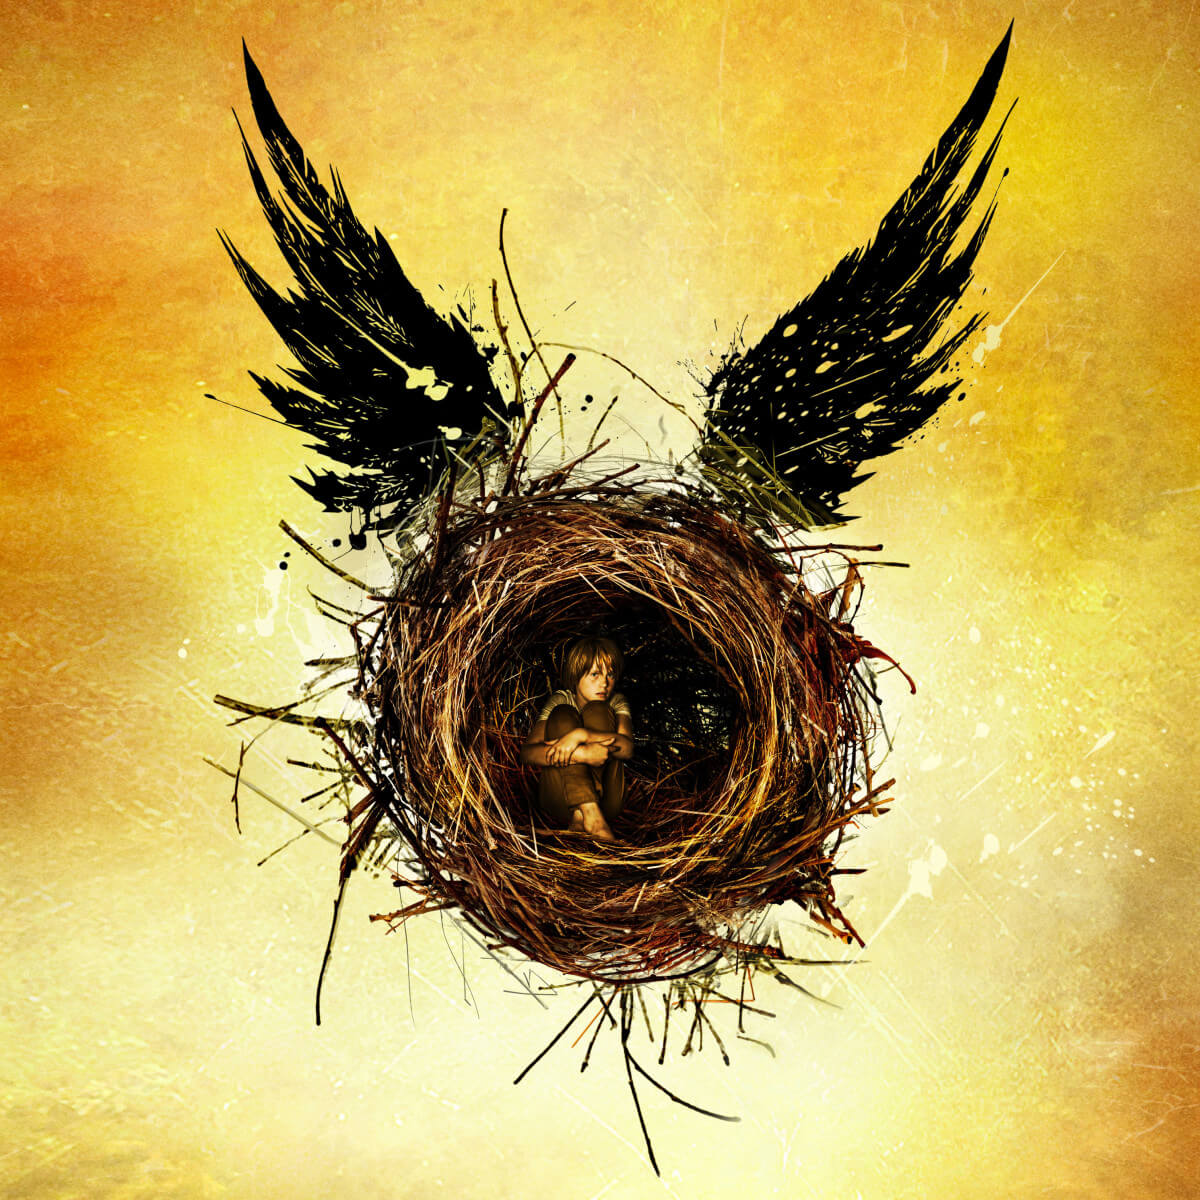 'Harry Potter and the Cursed Child' Recap and Reactions